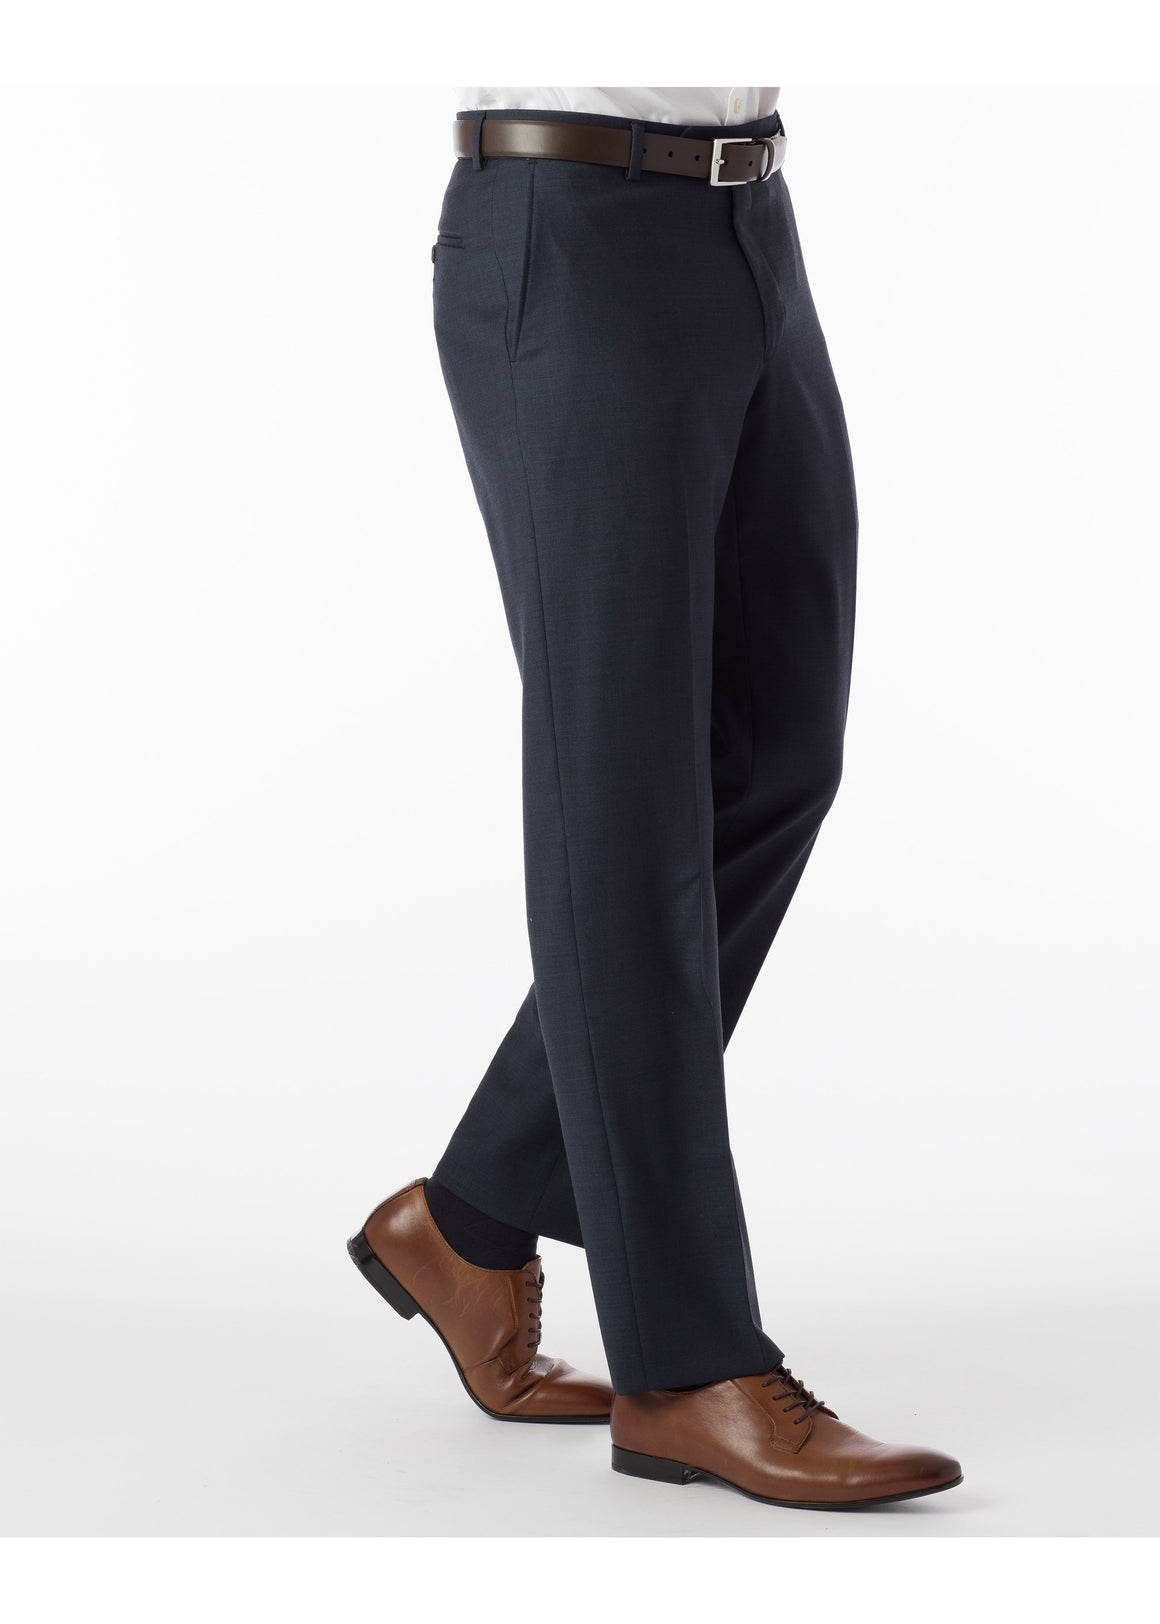 Ballin Super 110's Comfort Eze Sharkskin Soho Dress Pants | Navy